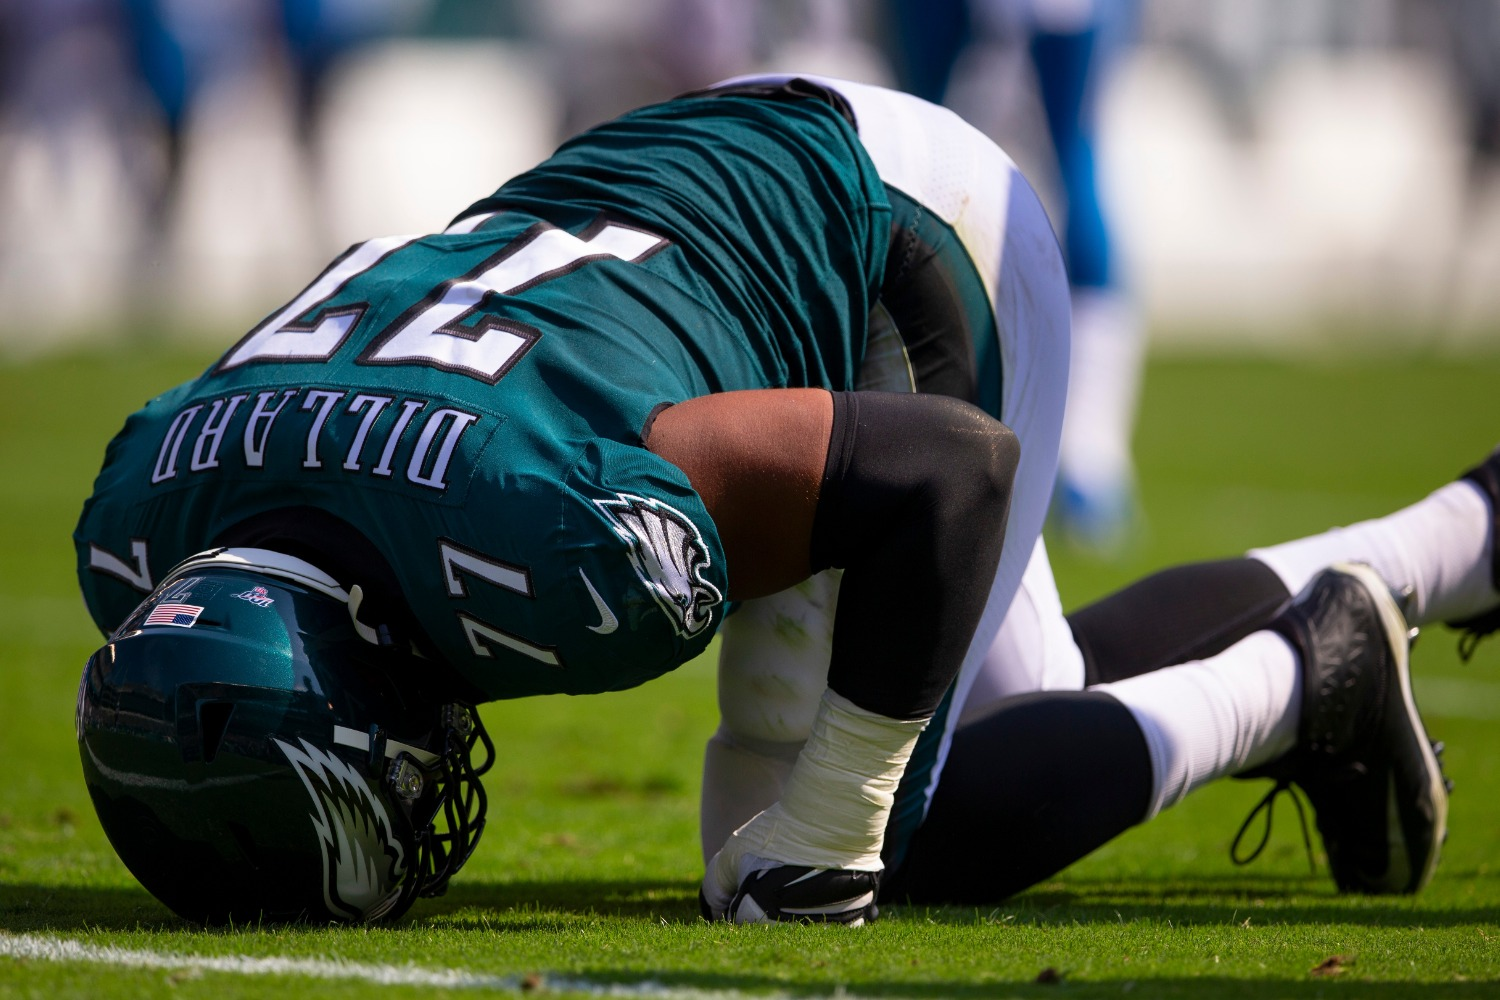 Carson Wentz and the Eagles just suffered a brutal blow to their Super Bowl chances with left tackle Andre Dillard suffering a biceps tear.